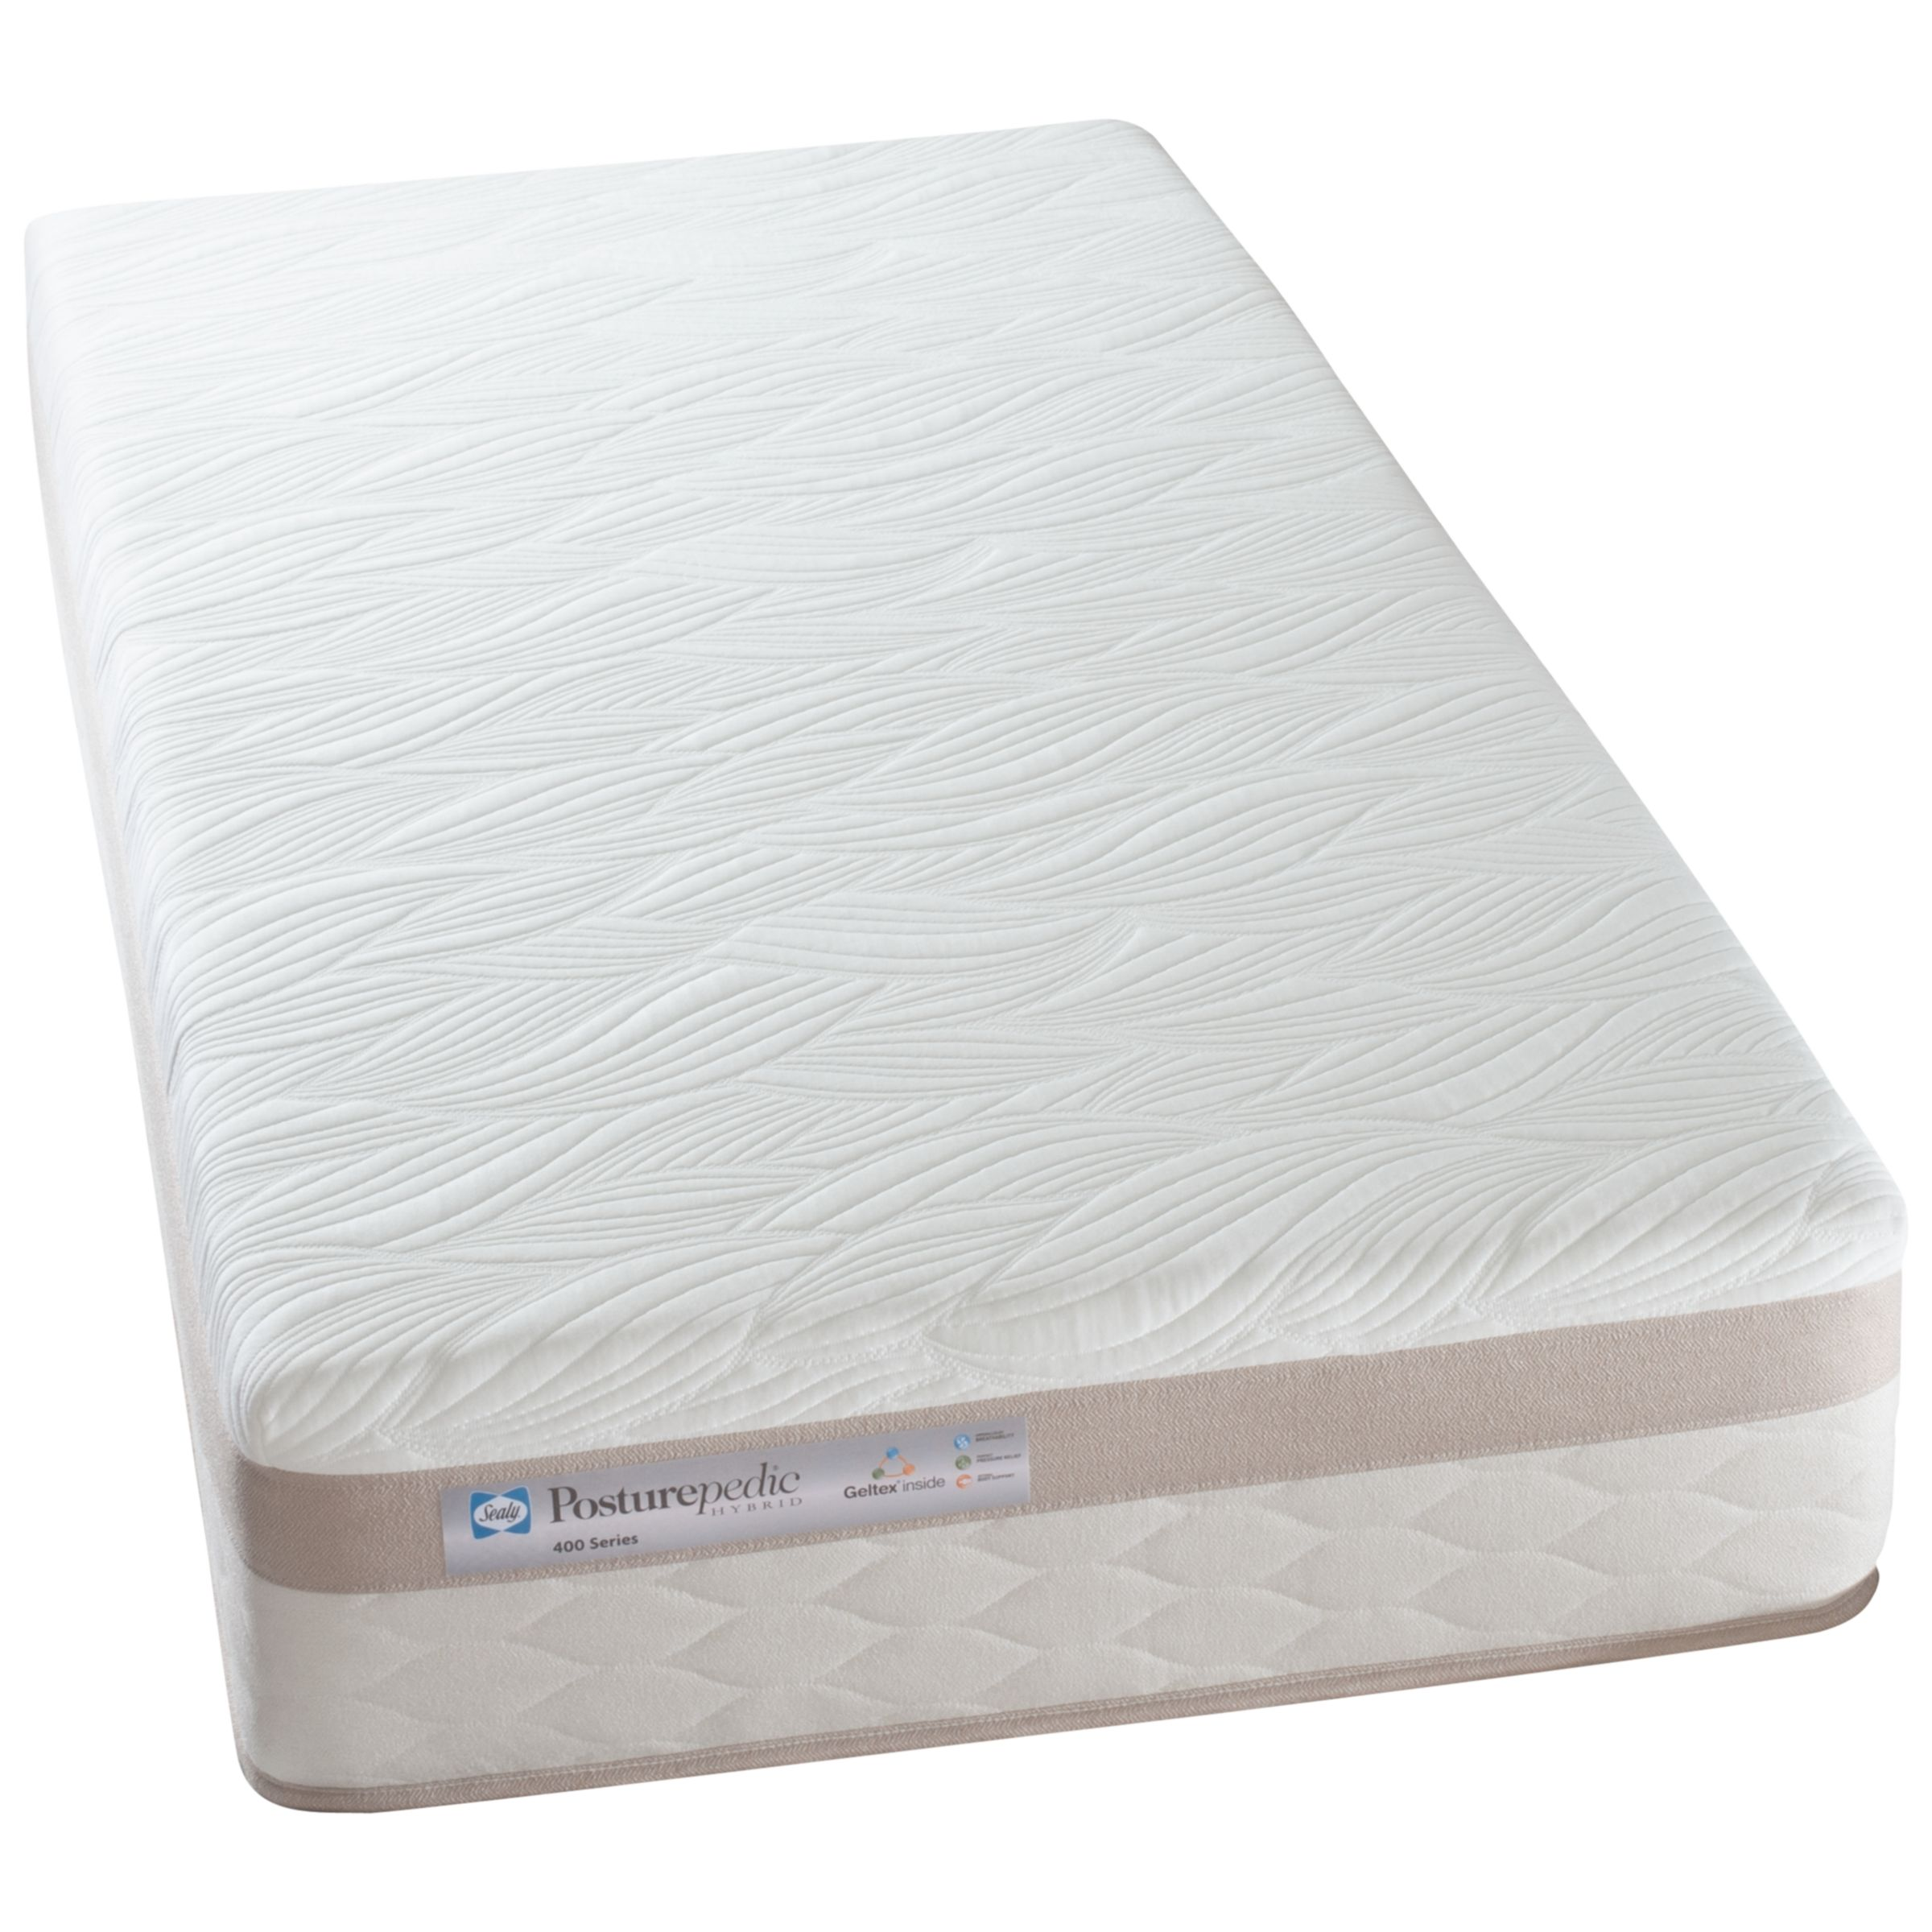 Sealy Posturepedic Hybrid Series 400 Mattress, Single